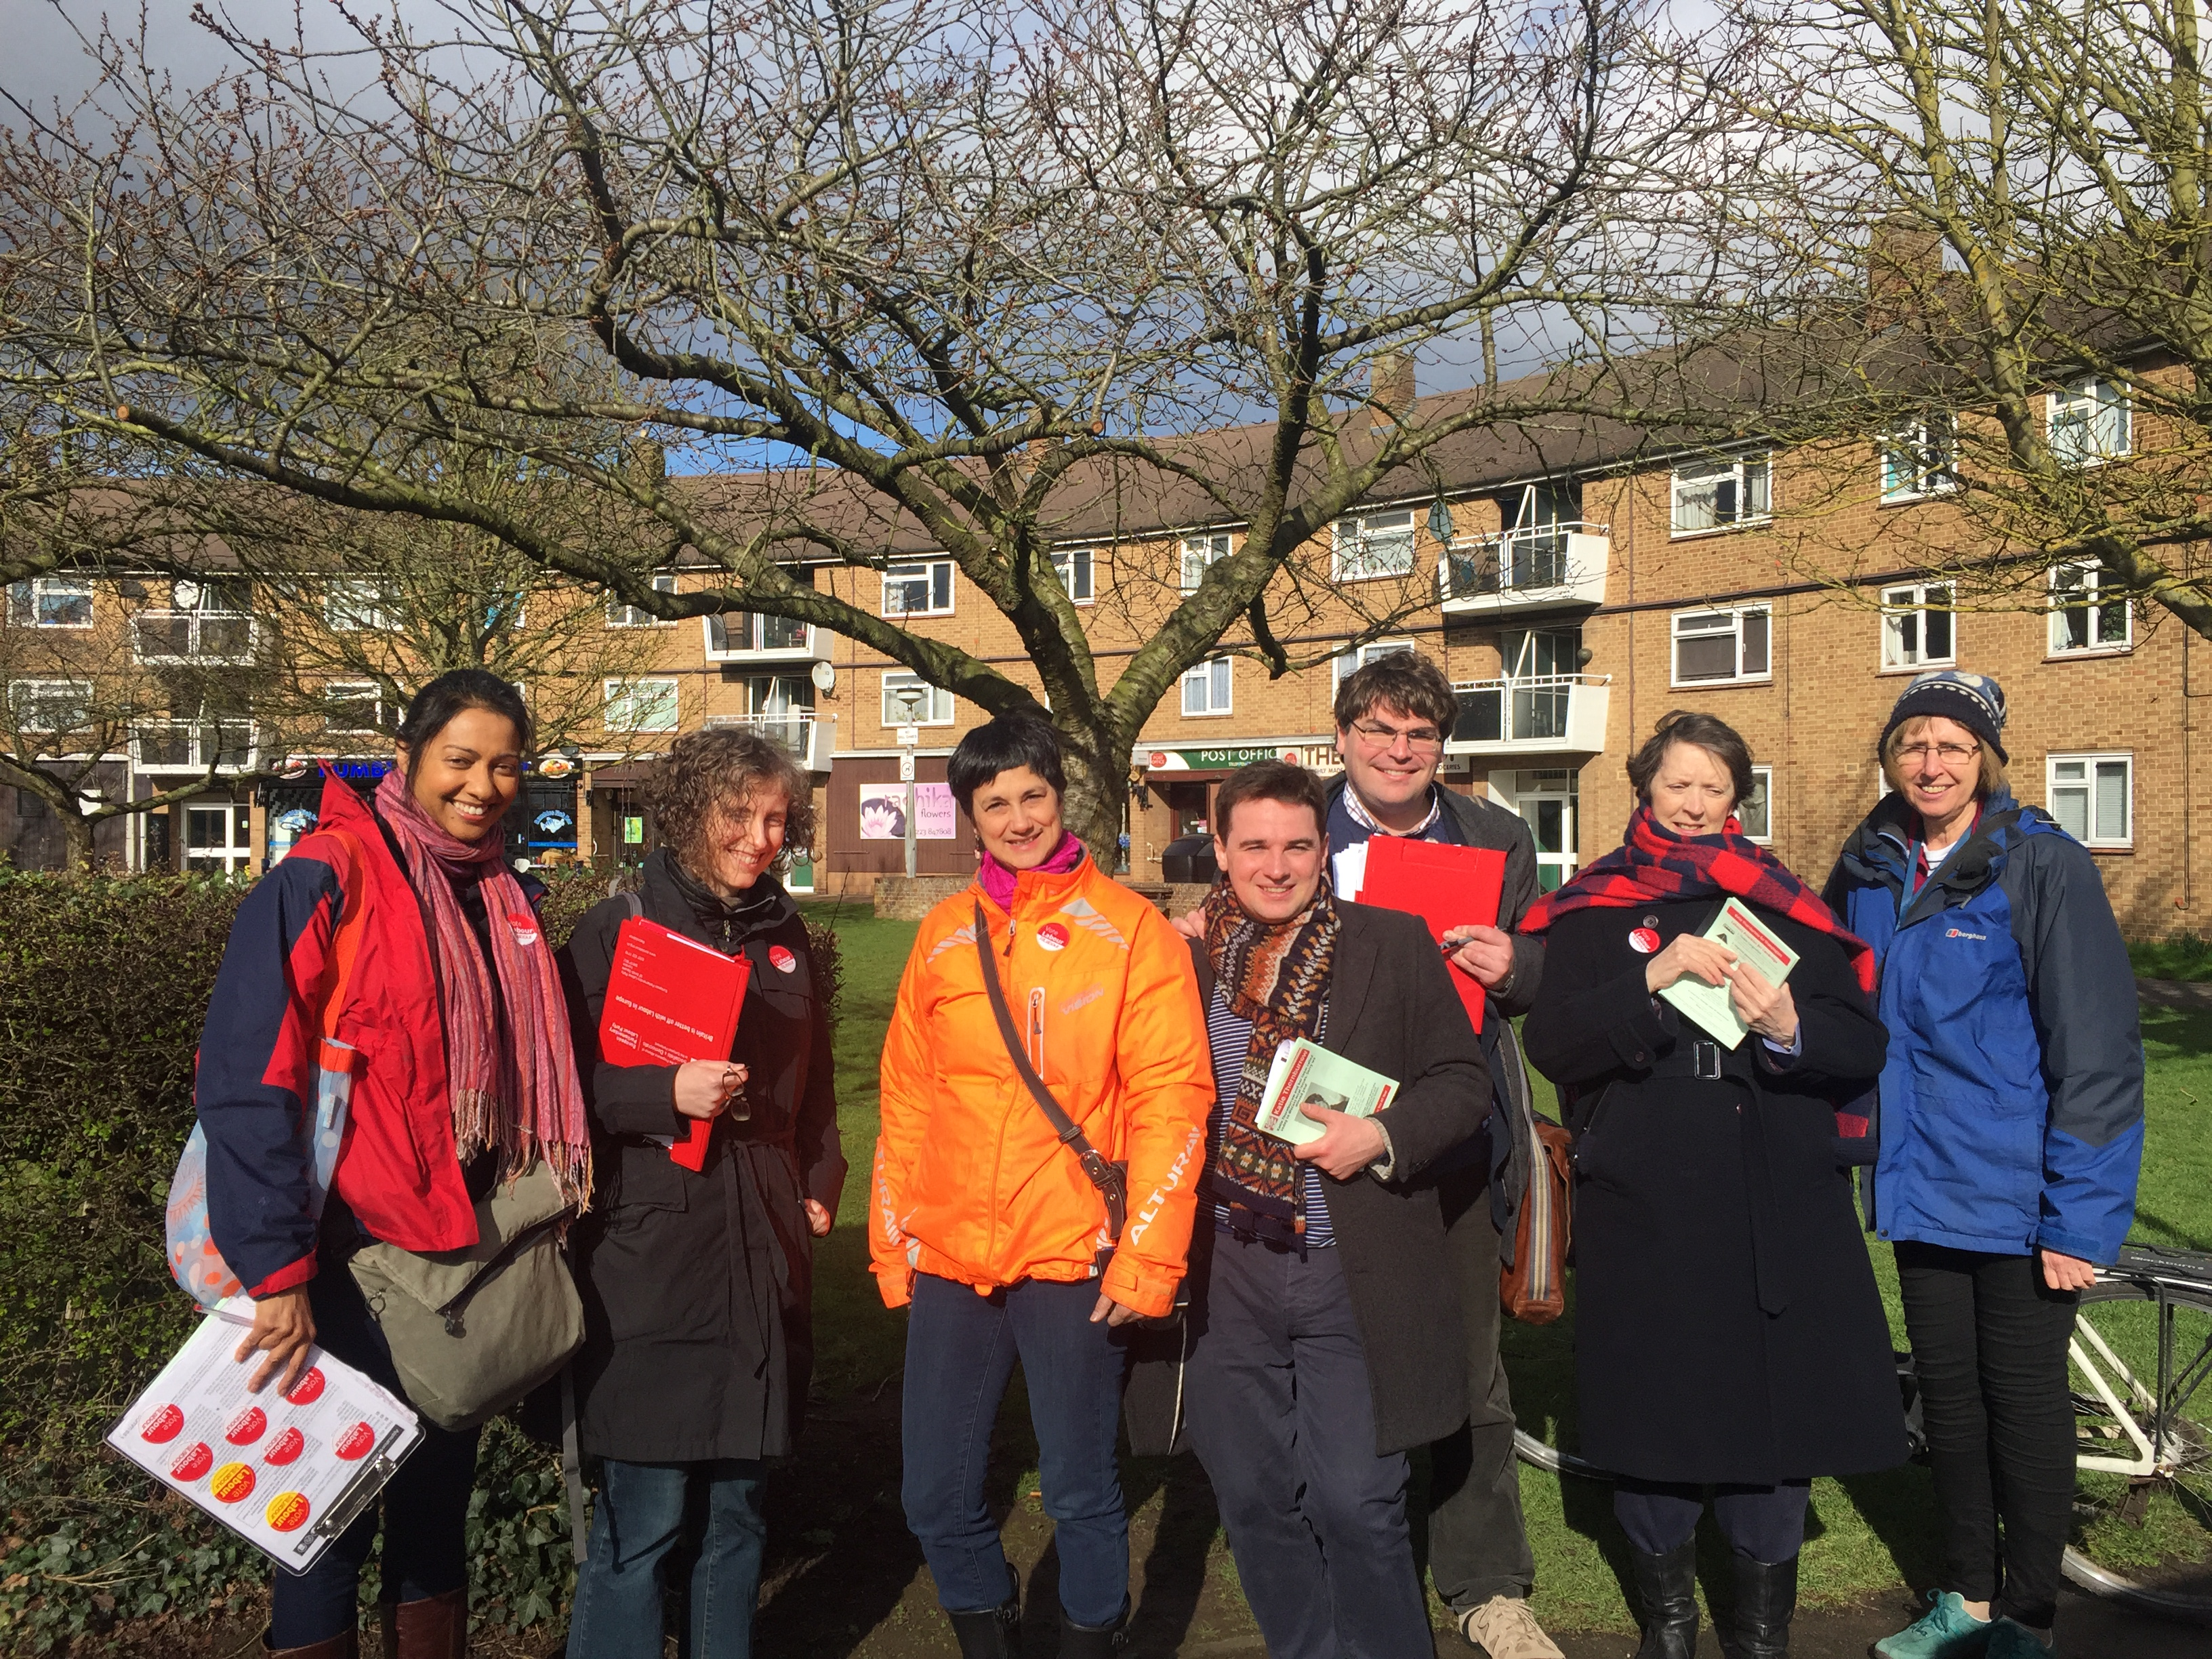 Campaigning for Trumpington